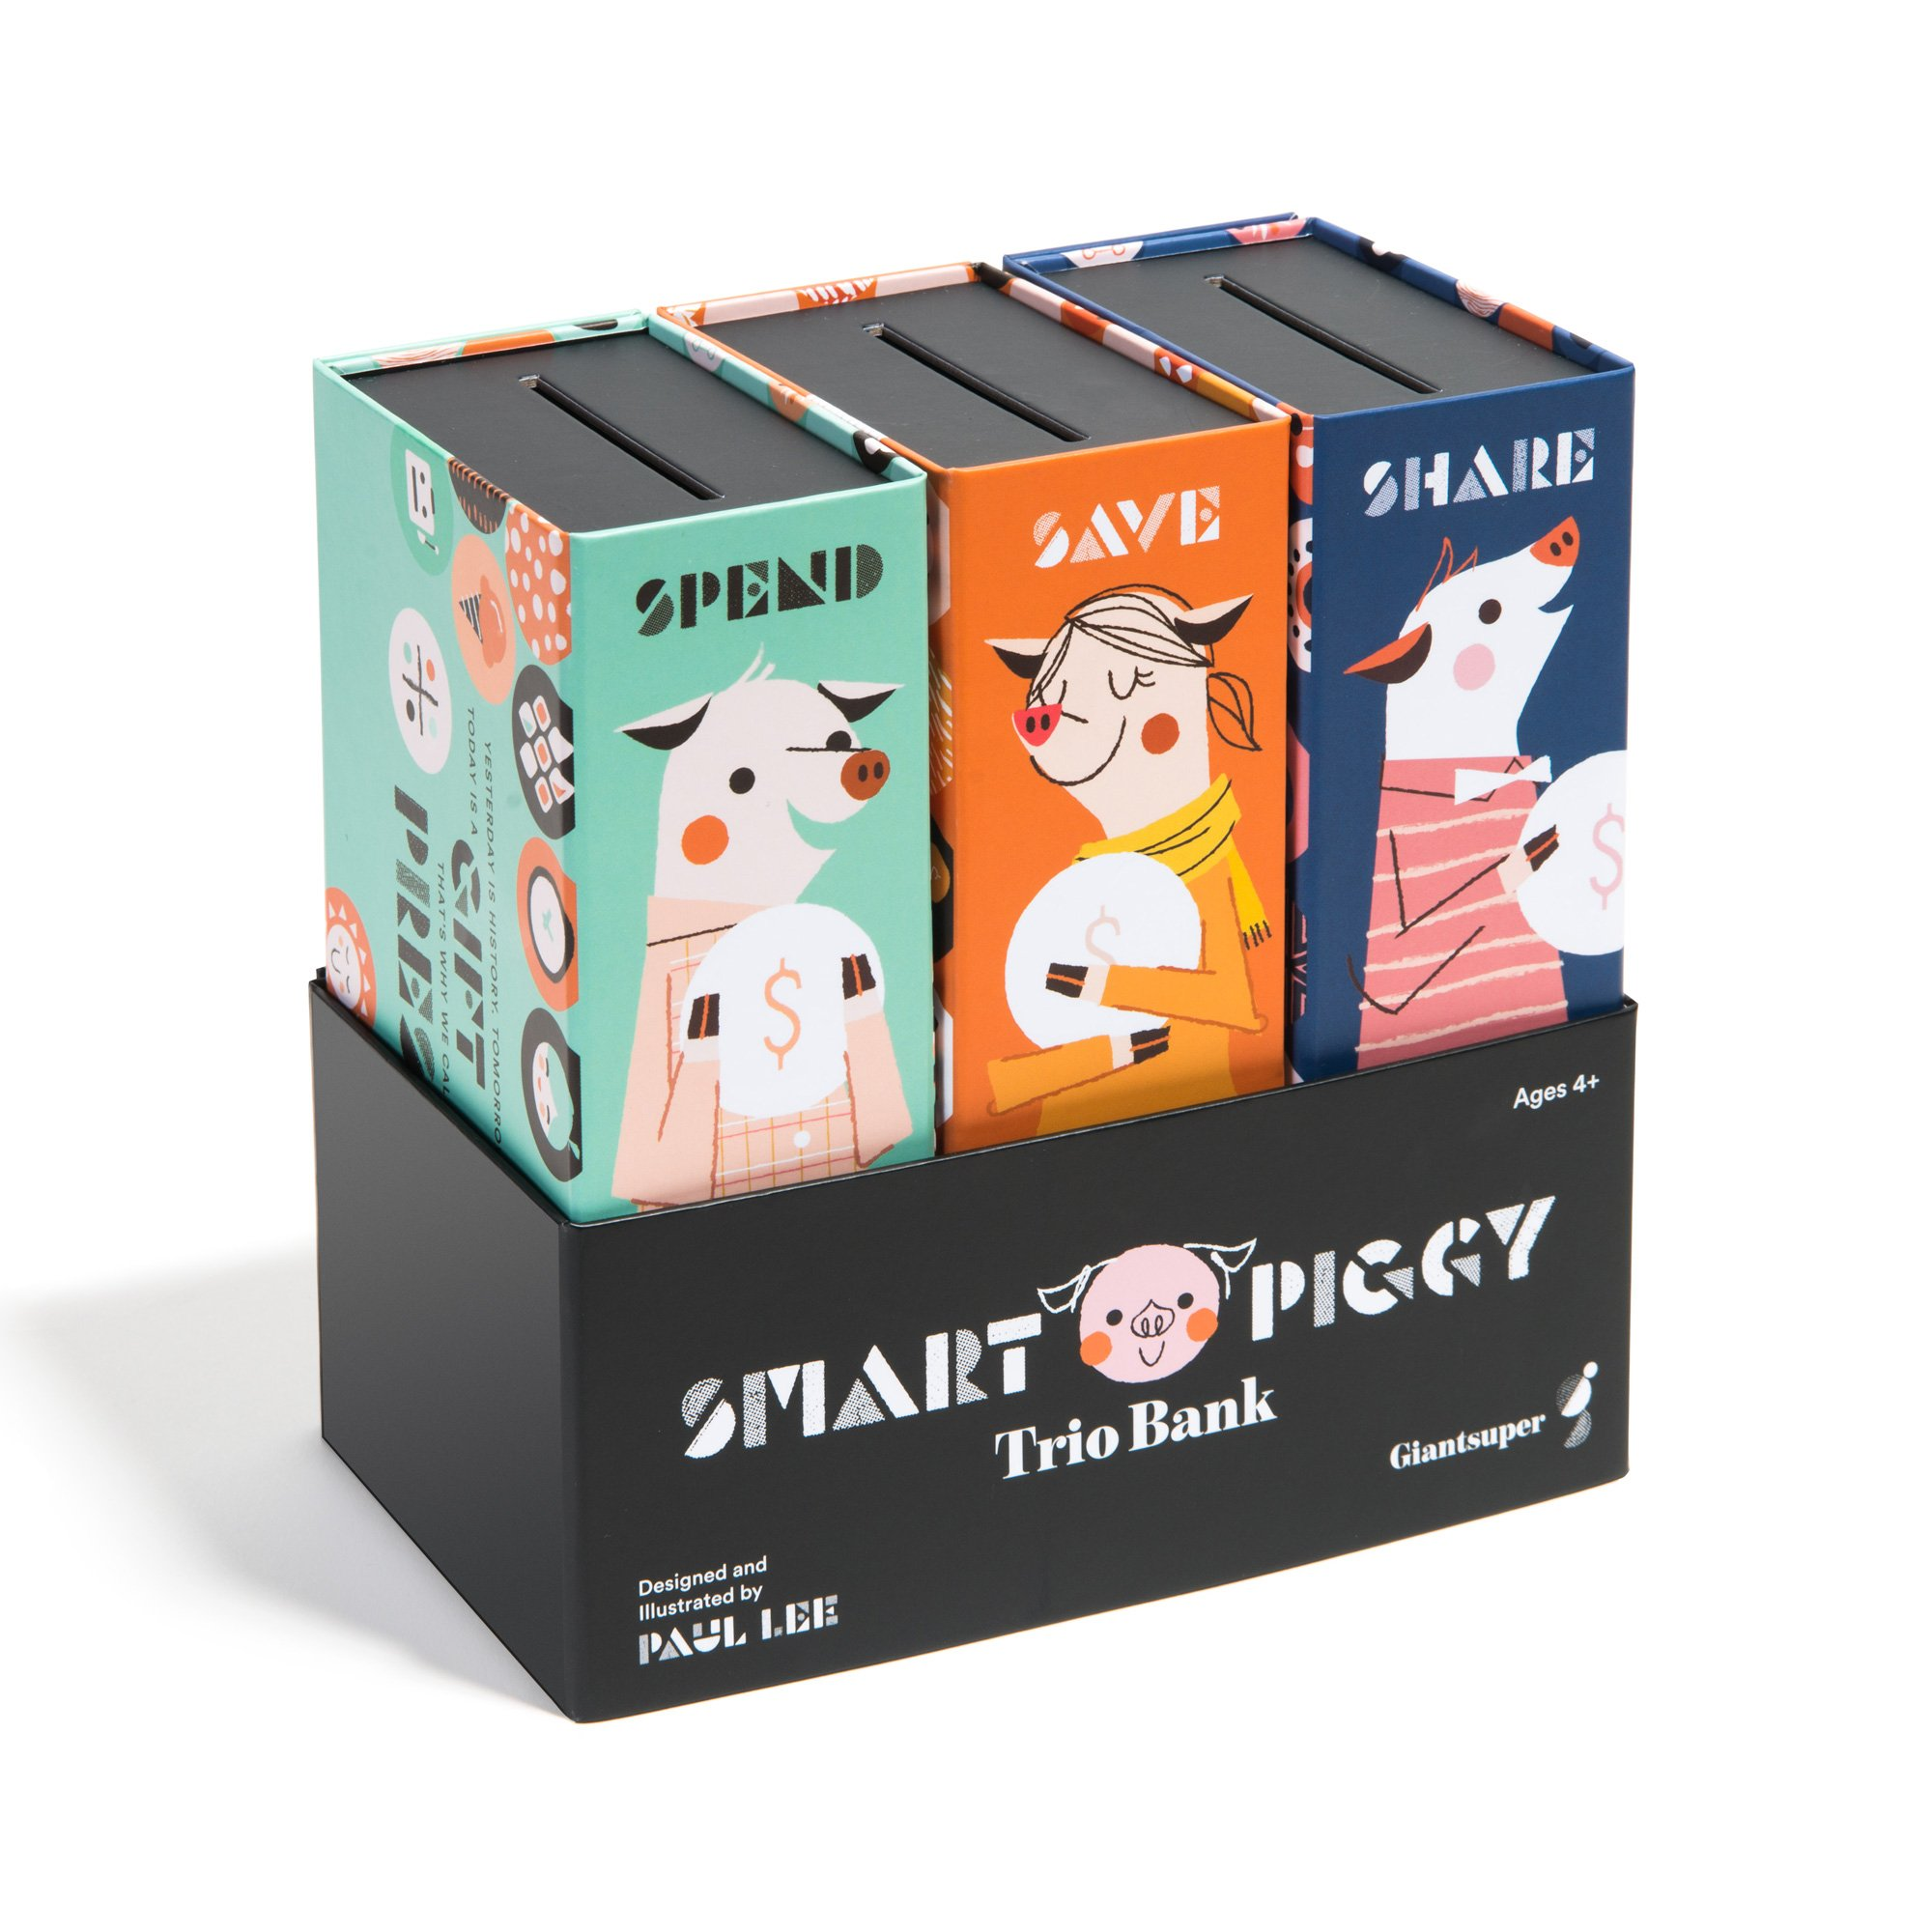 Giantsuper Smart Piggy Trio Bank: 3-in-1 Money-Wise Educational Piggy Bank